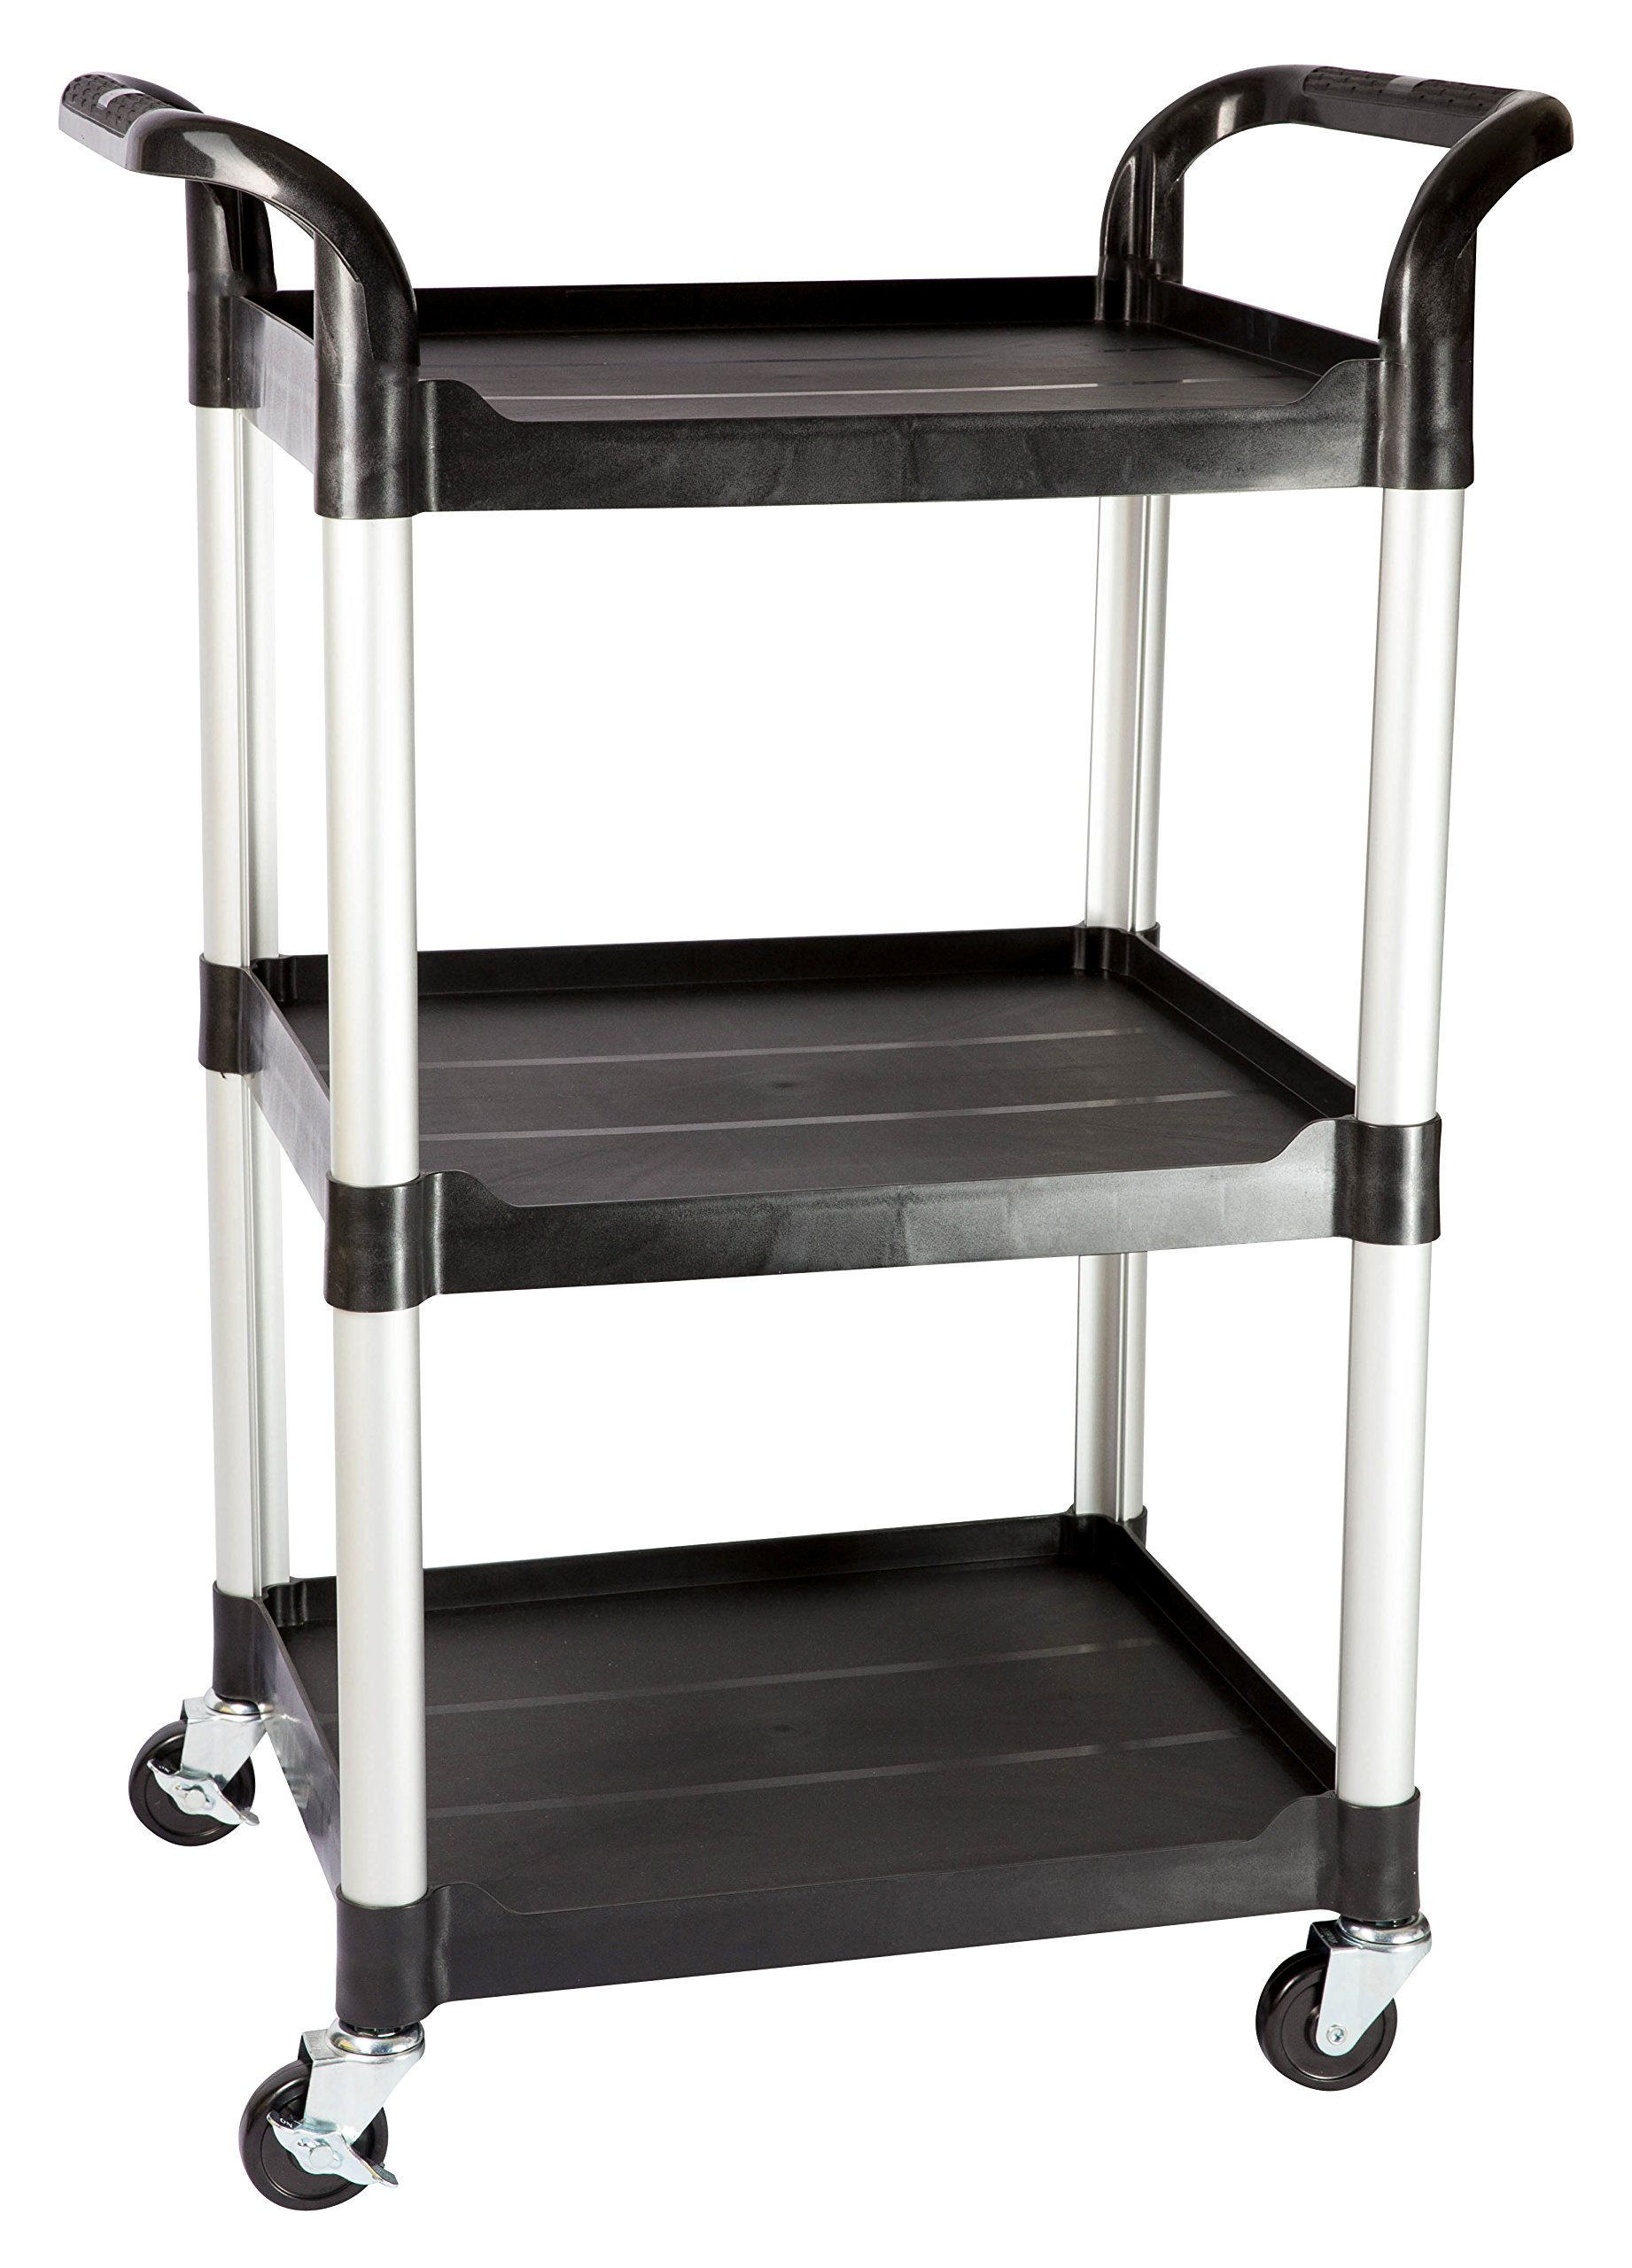 JaboEquip Compact-Size Multi-purposed Rolling Utility Service Carts 3 Shelf, for Lab, Catering and Hospitality-Black